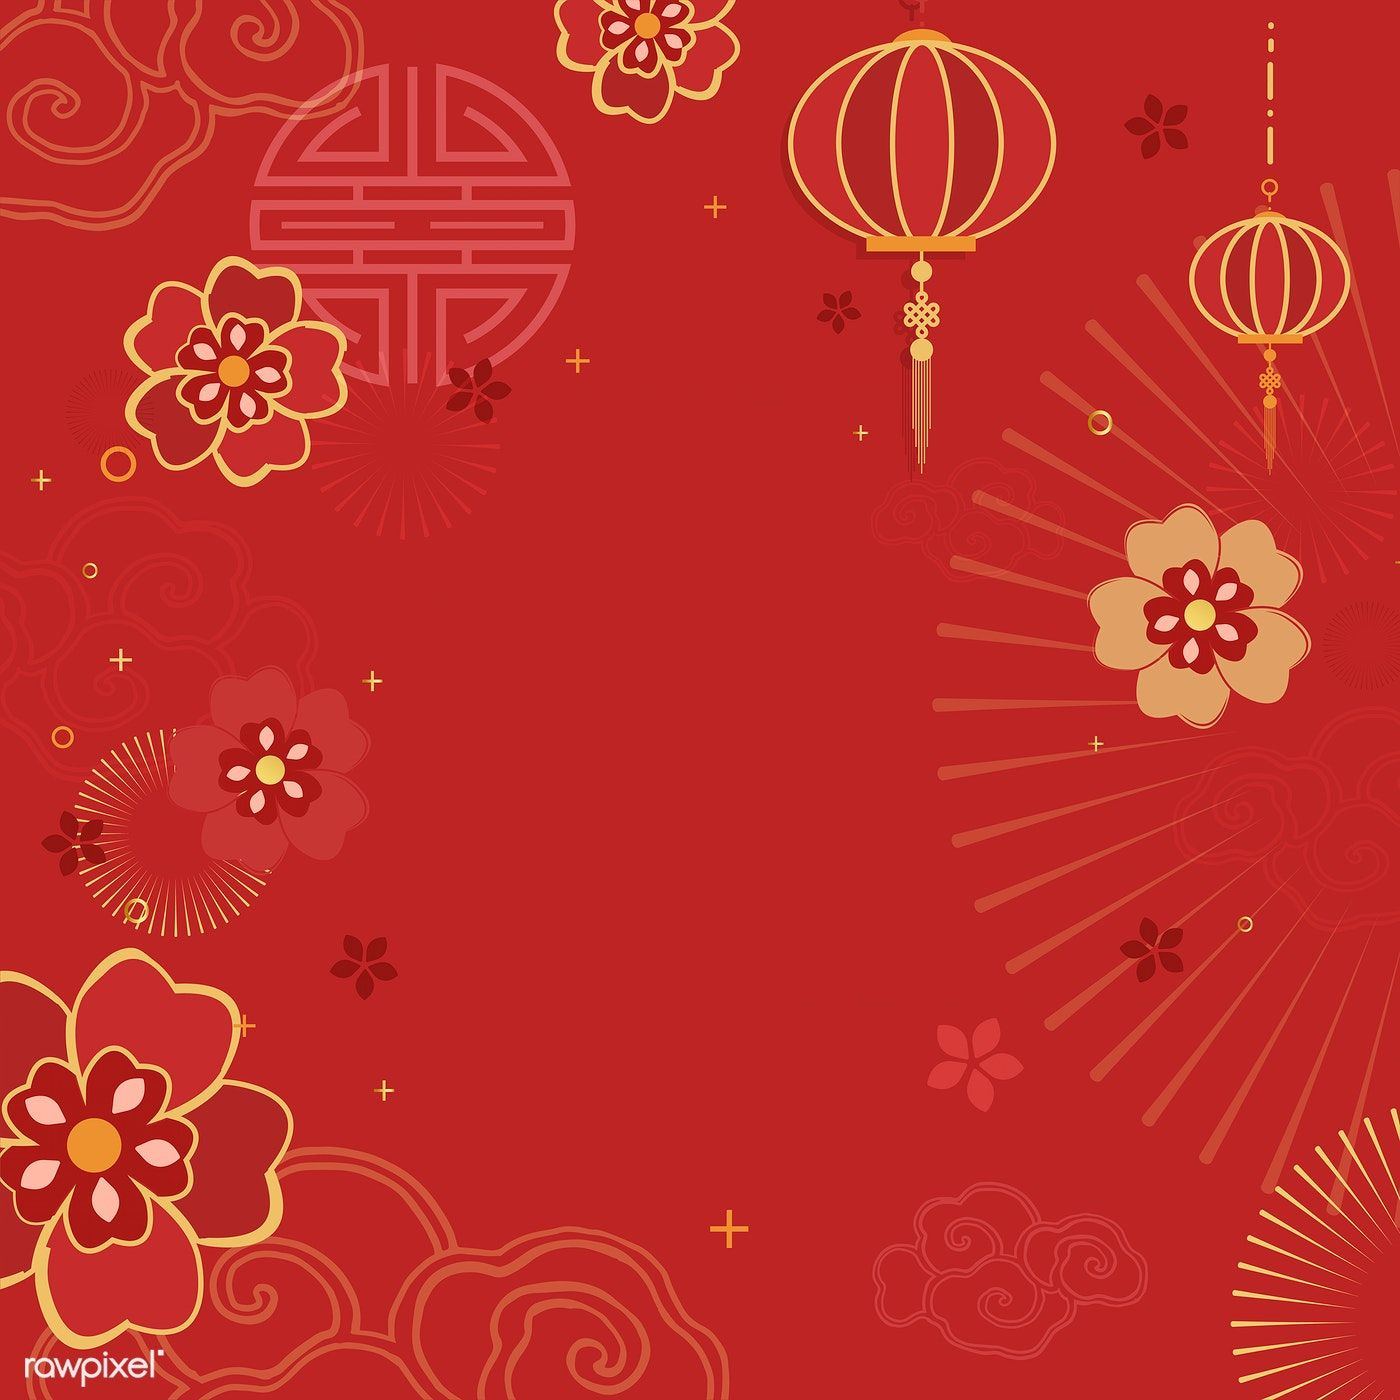 Chinese New Year 2019 Greeting Background Free Image By Rawpixel